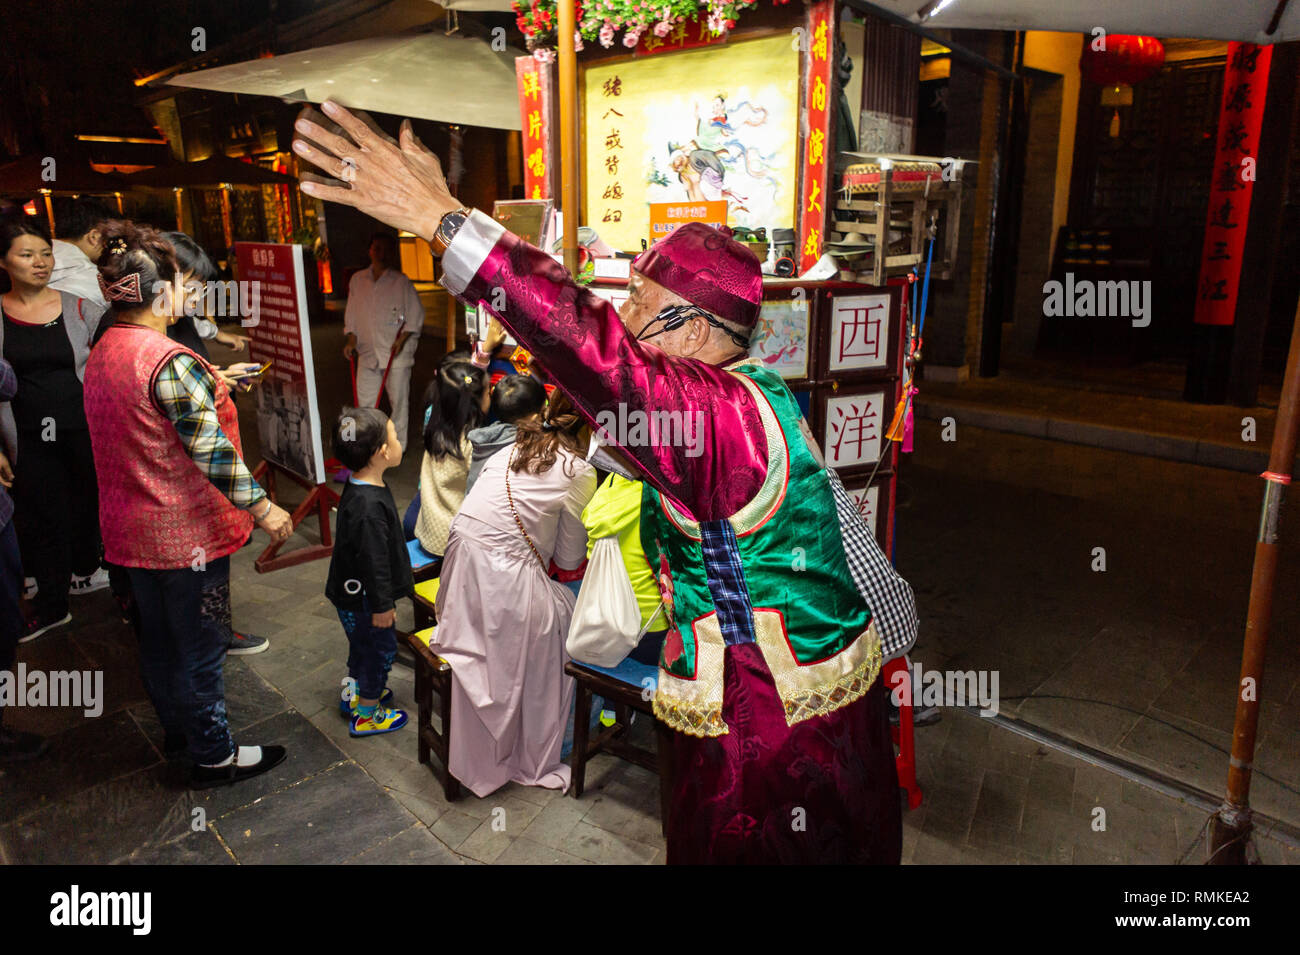 Chinese narrator gesticulates at a Peking peep show at a park in Shenzhen, China - Stock Image